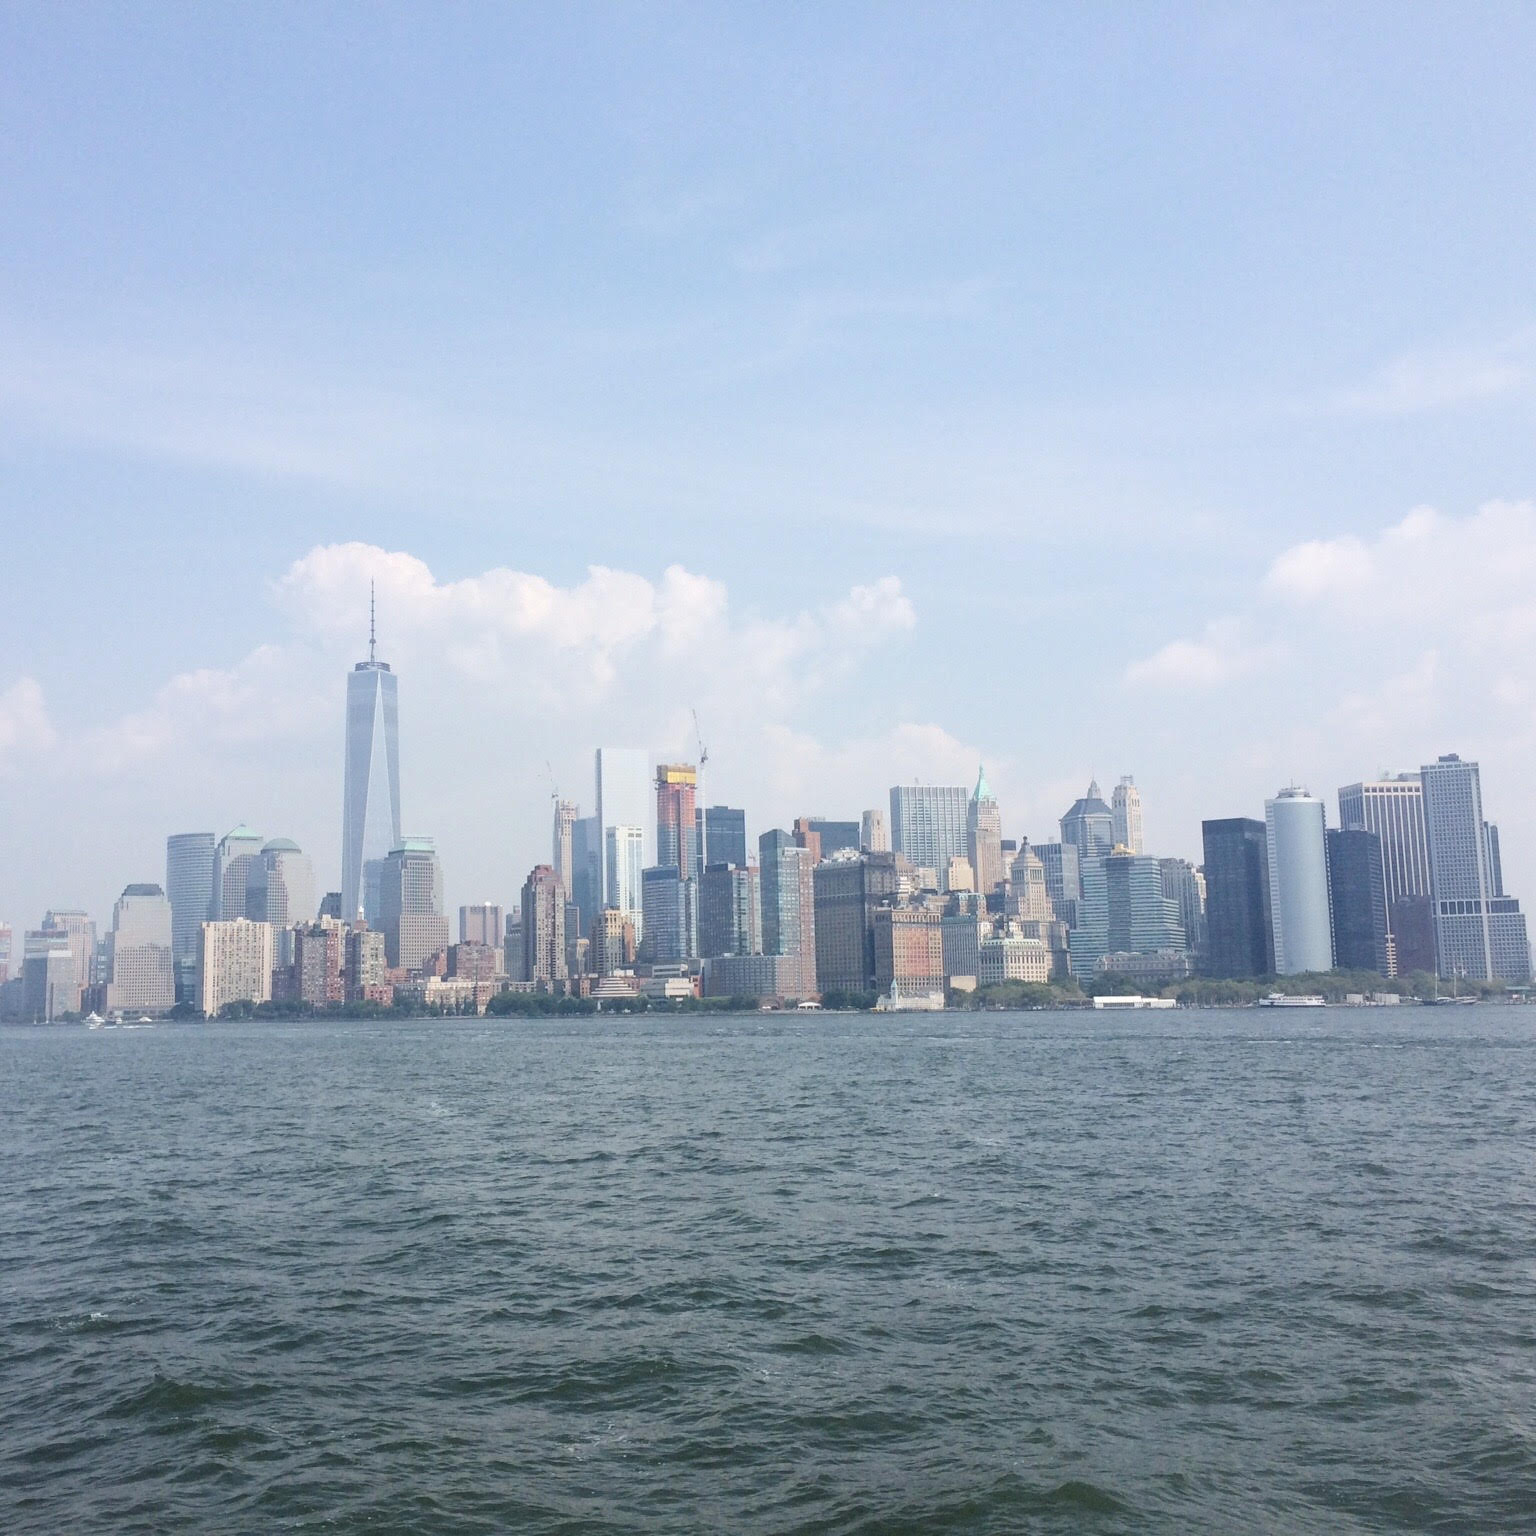 09.02.15 // Day 7 : The First Time I Visited NYC